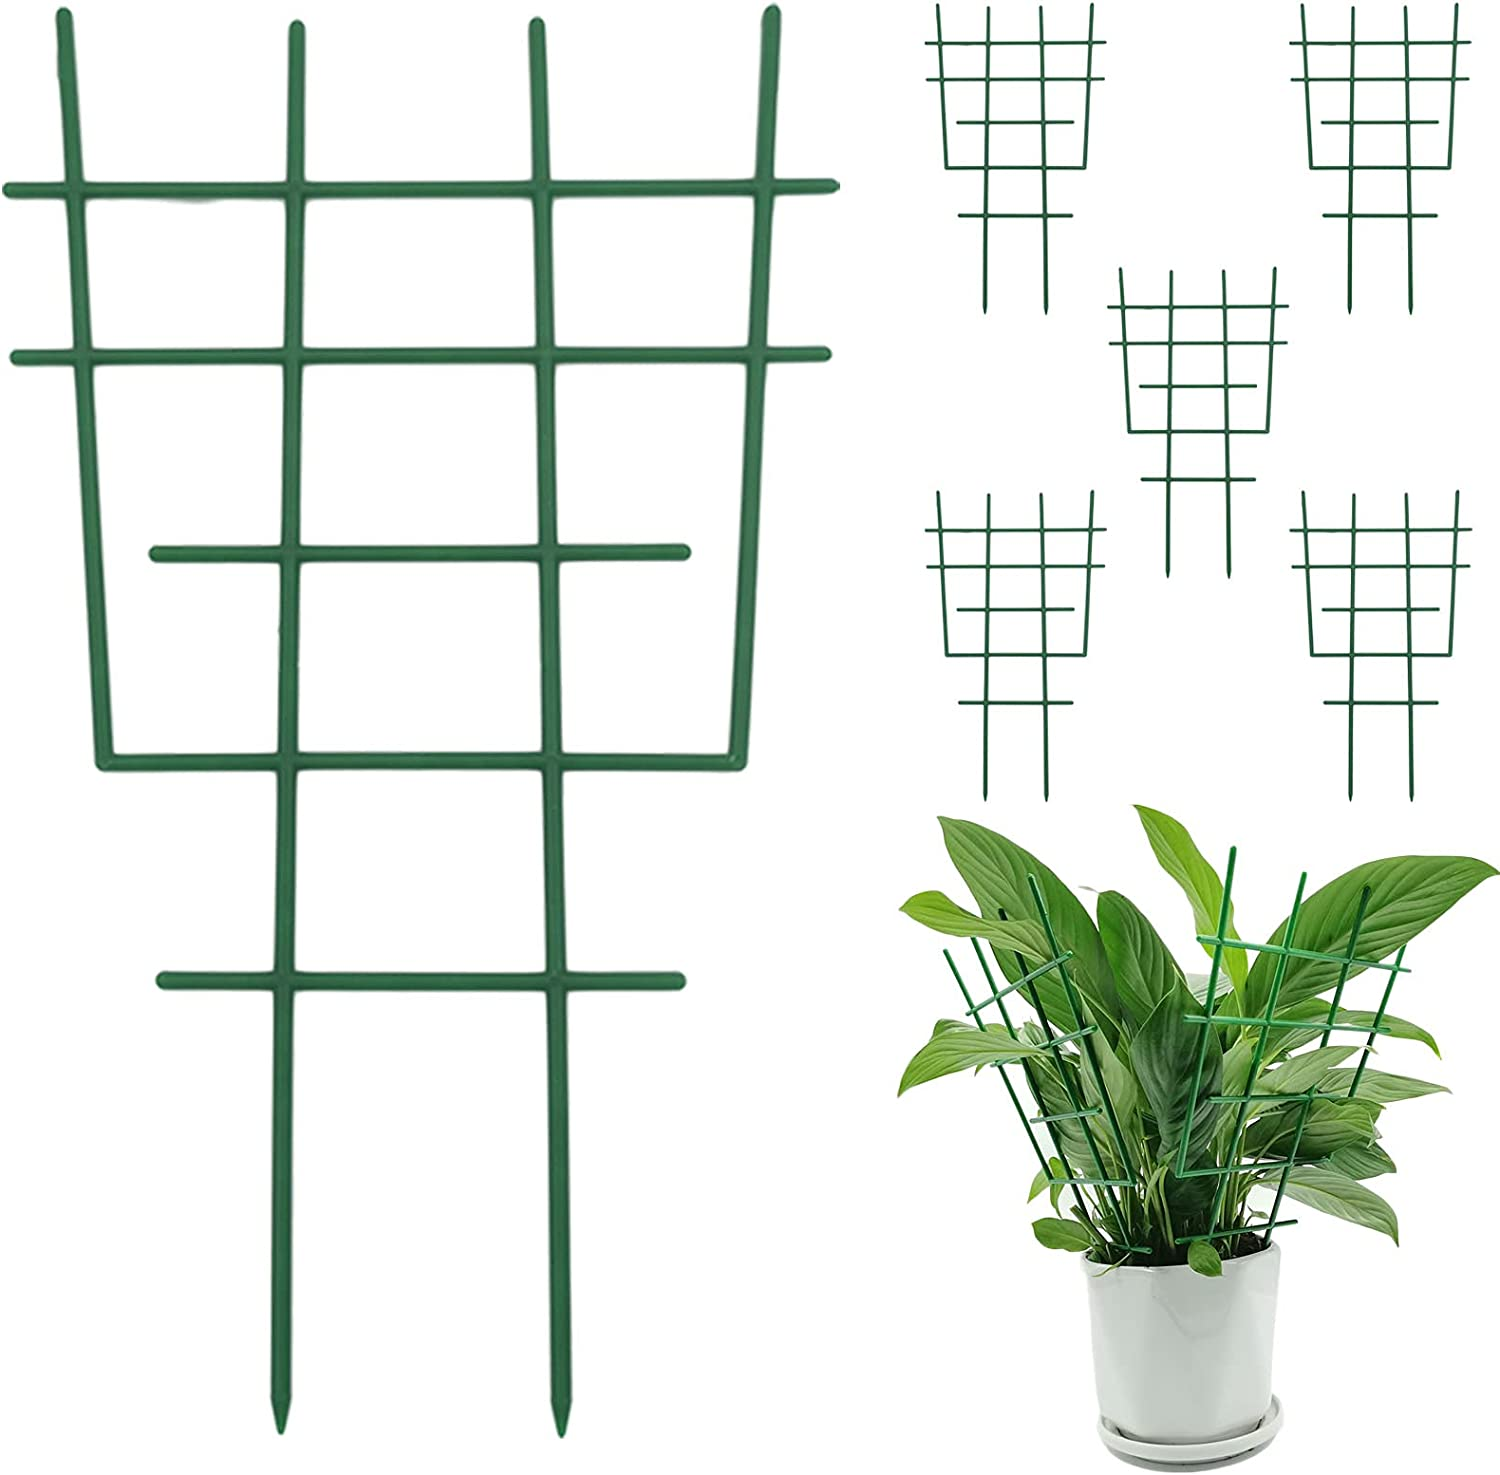 AGiKord 6PCS Plastic Garden Trellis Supports, Plant Trellis for Climbing Plants, Stackable Potted Plant Support for Flower Vegetable Rose Vine Pea Cucumbers (12 x 7.3 x 0.2 inch)